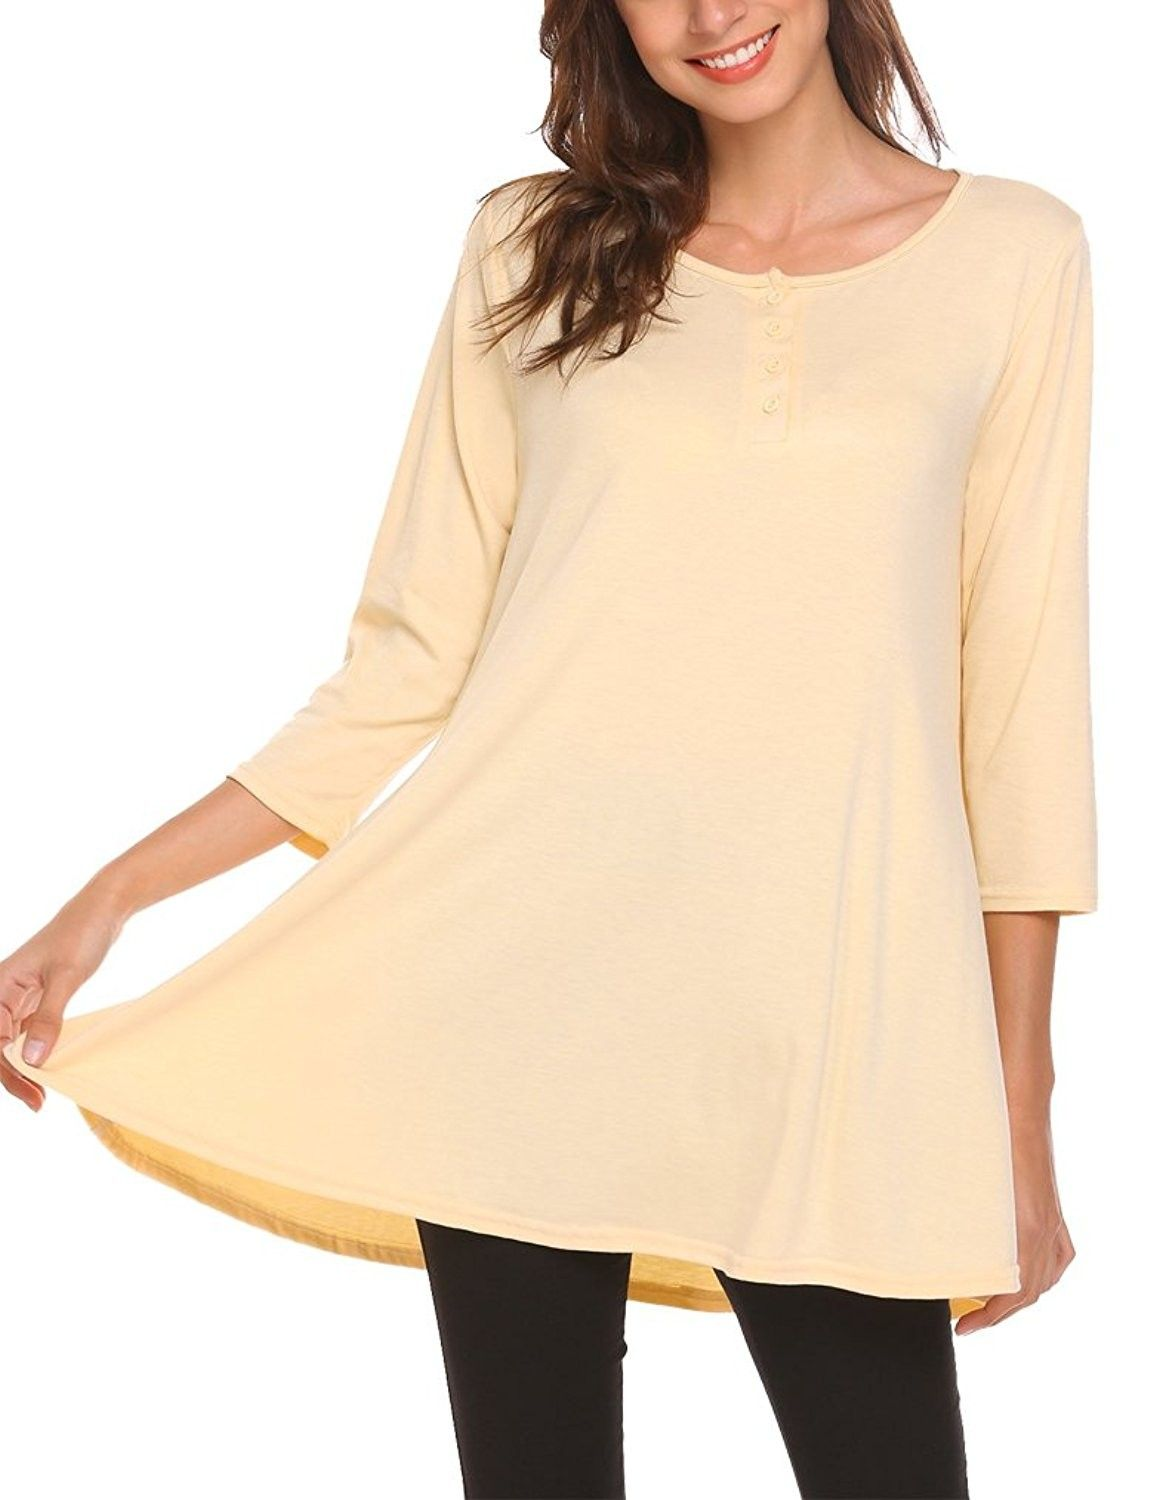 6303424842e Women's Clothing, Tops & Tees, Henleys, Womens Loose 3/4 Sleeve Swing  Buttons Tunic Tops Henley T Shirts With Pockets - Beige - C3189R36DD3 #women  #fashion ...